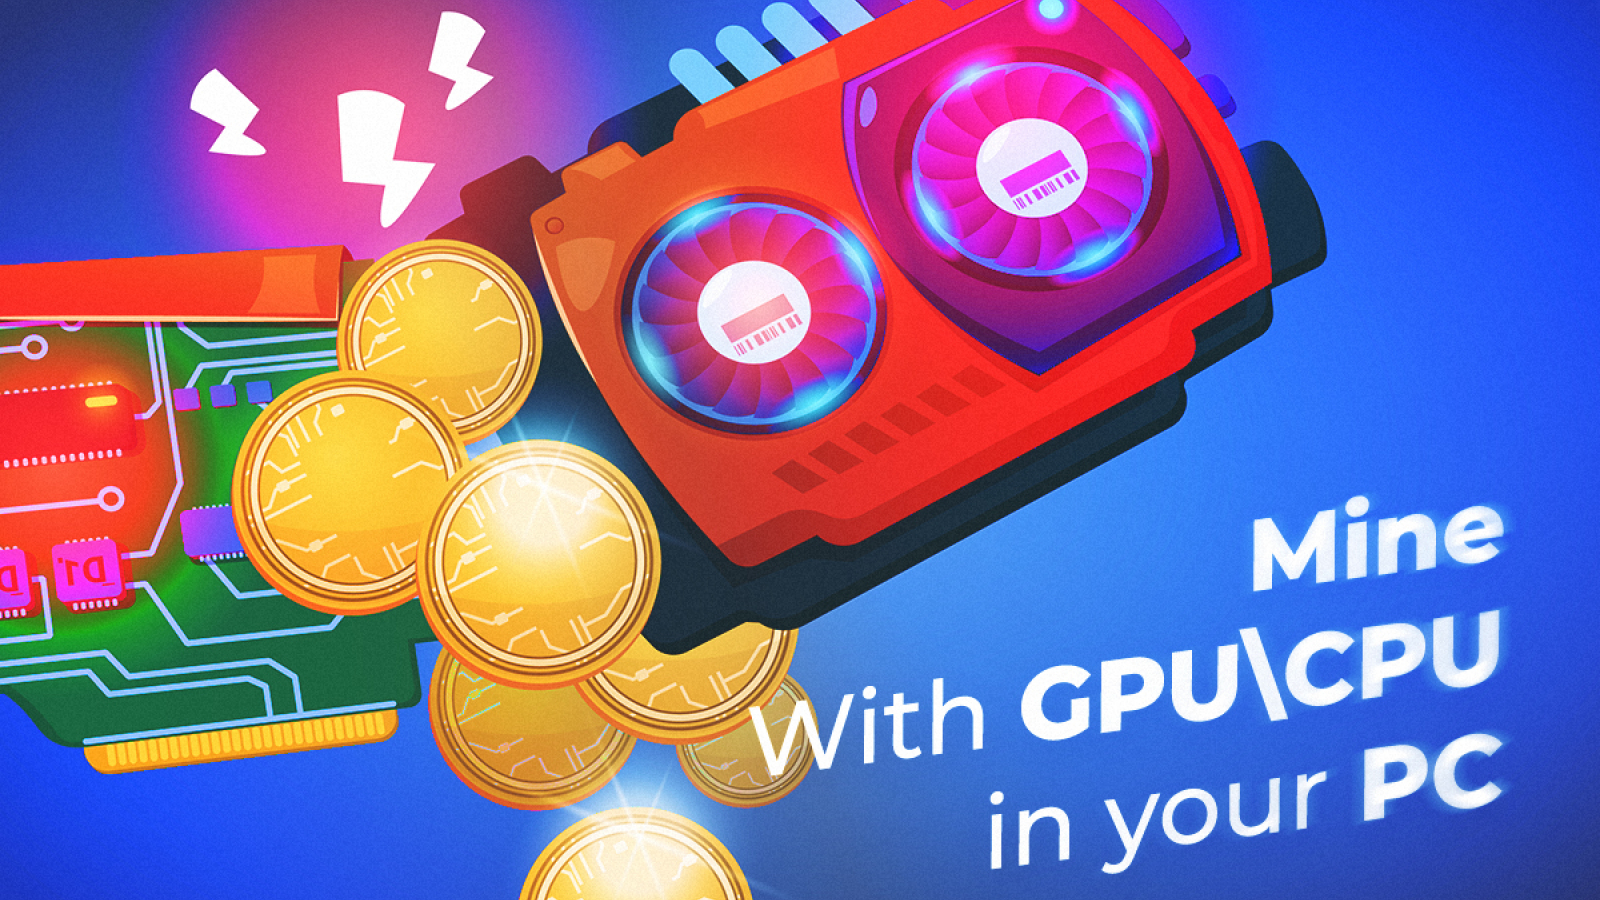 Claymore Cryptonote Gpu Miner what cryptocurrency can you still mine with gpucpu in your